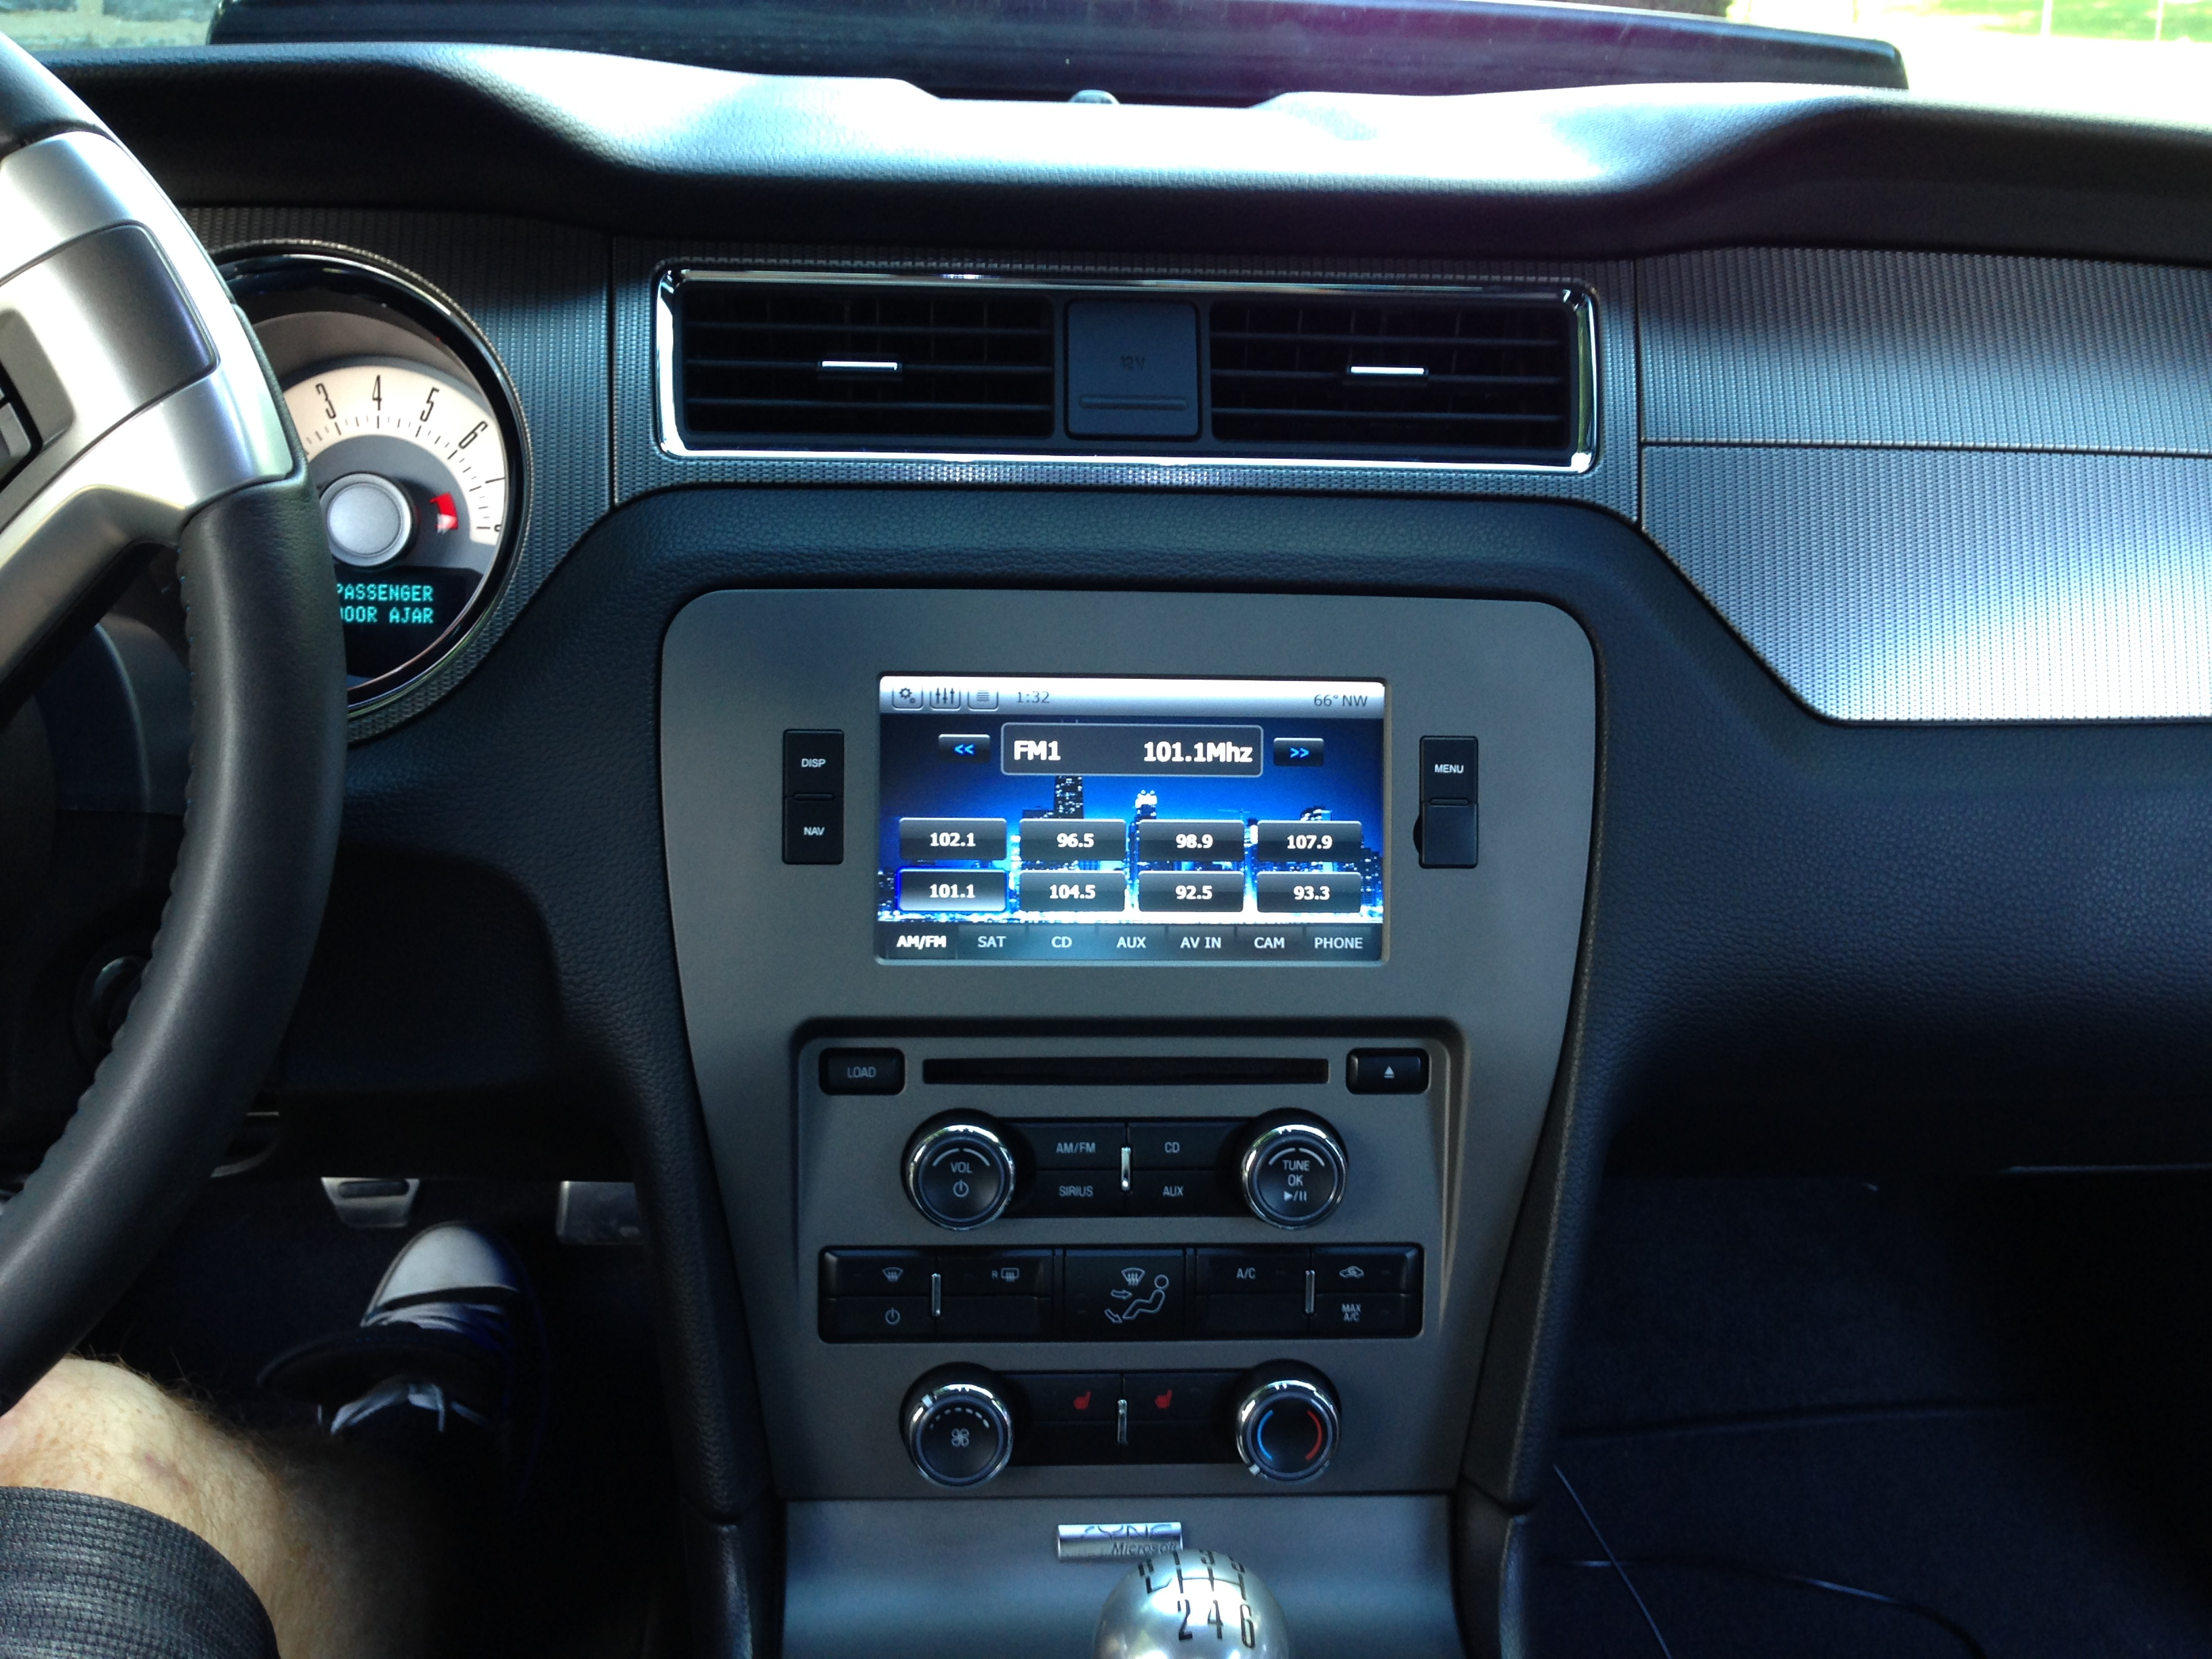 Features highlights 2011 mustang gt with raxiom navigation navigation system